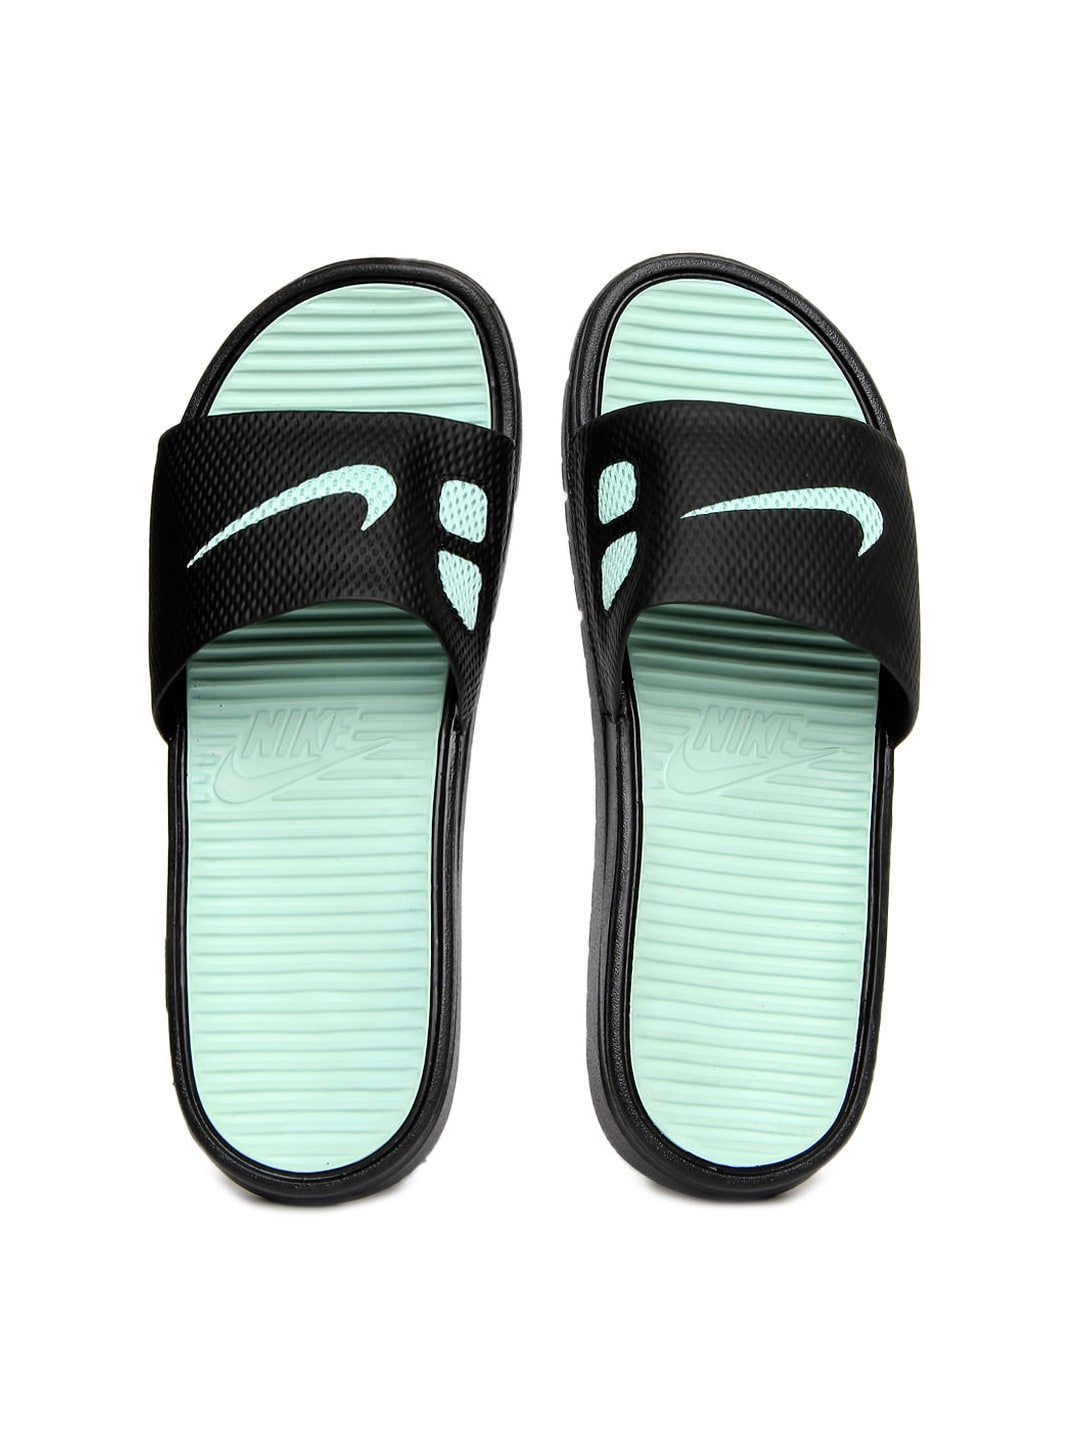 designer fashion aba9b 7795b mint green nike flip flops